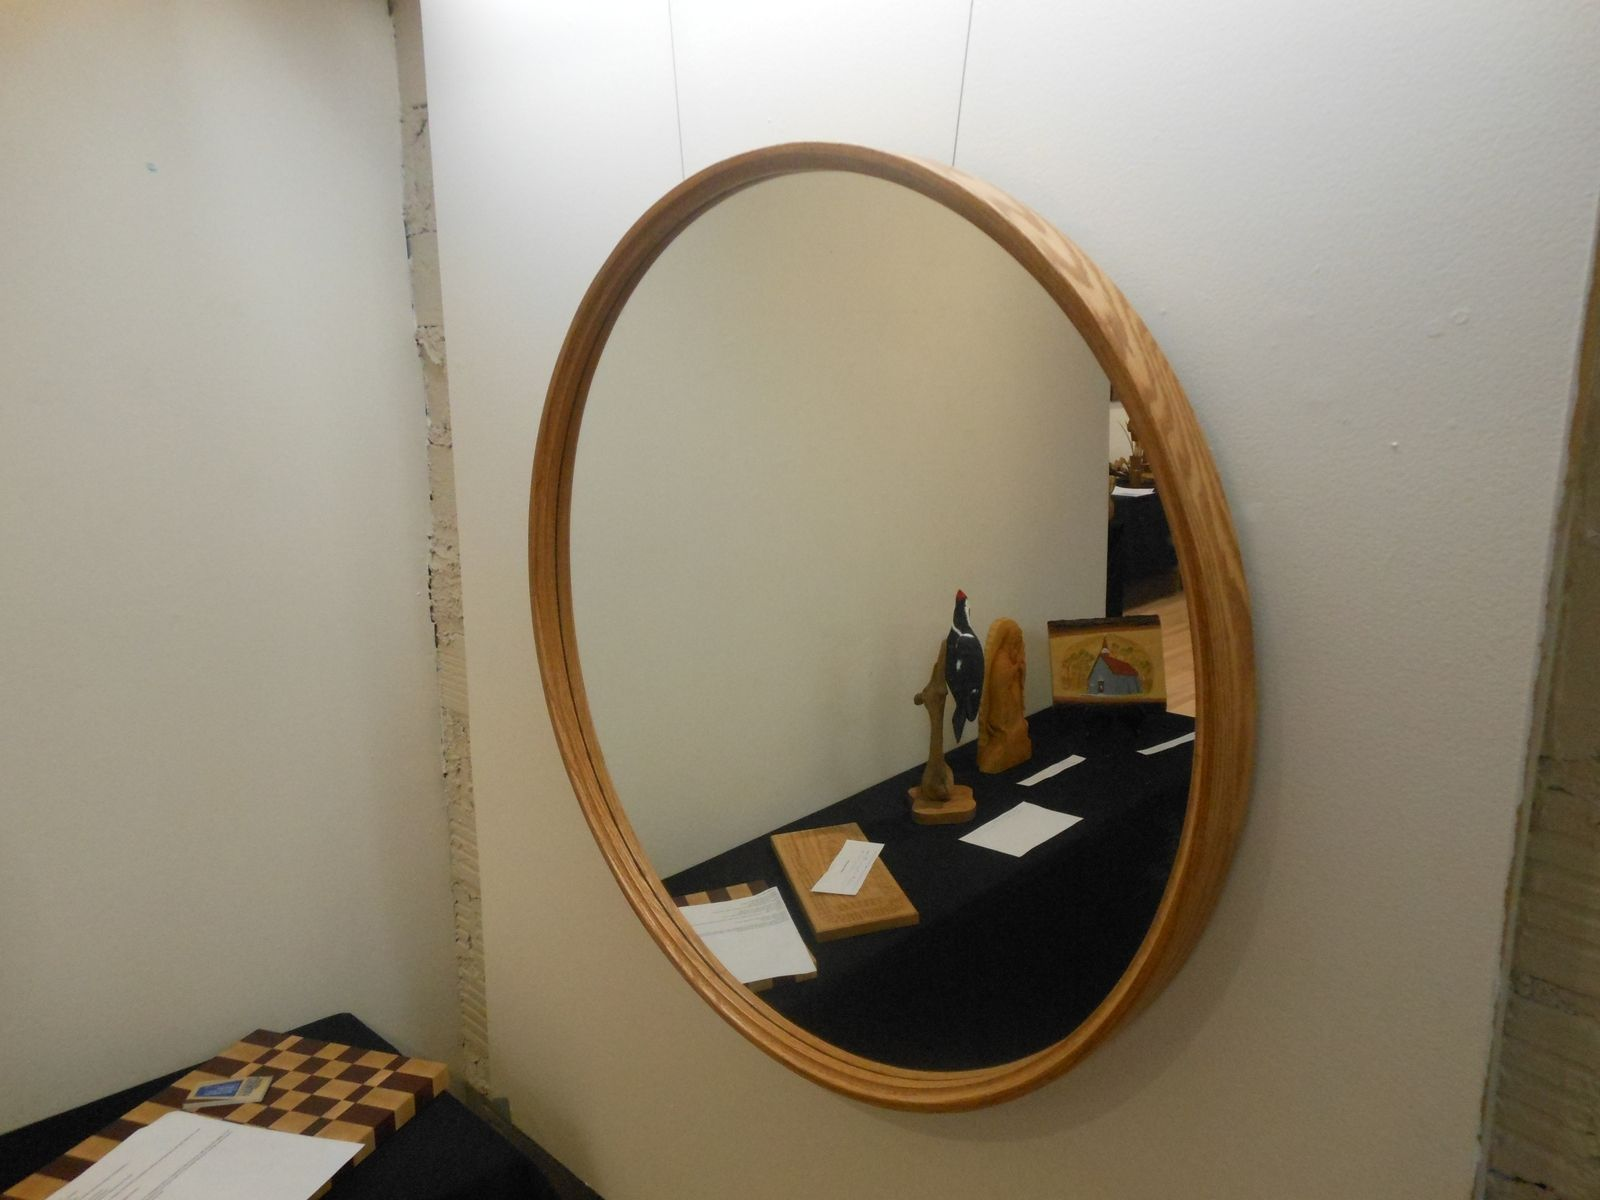 Large Round Mirror With Wood Frame Designs 42 Inches